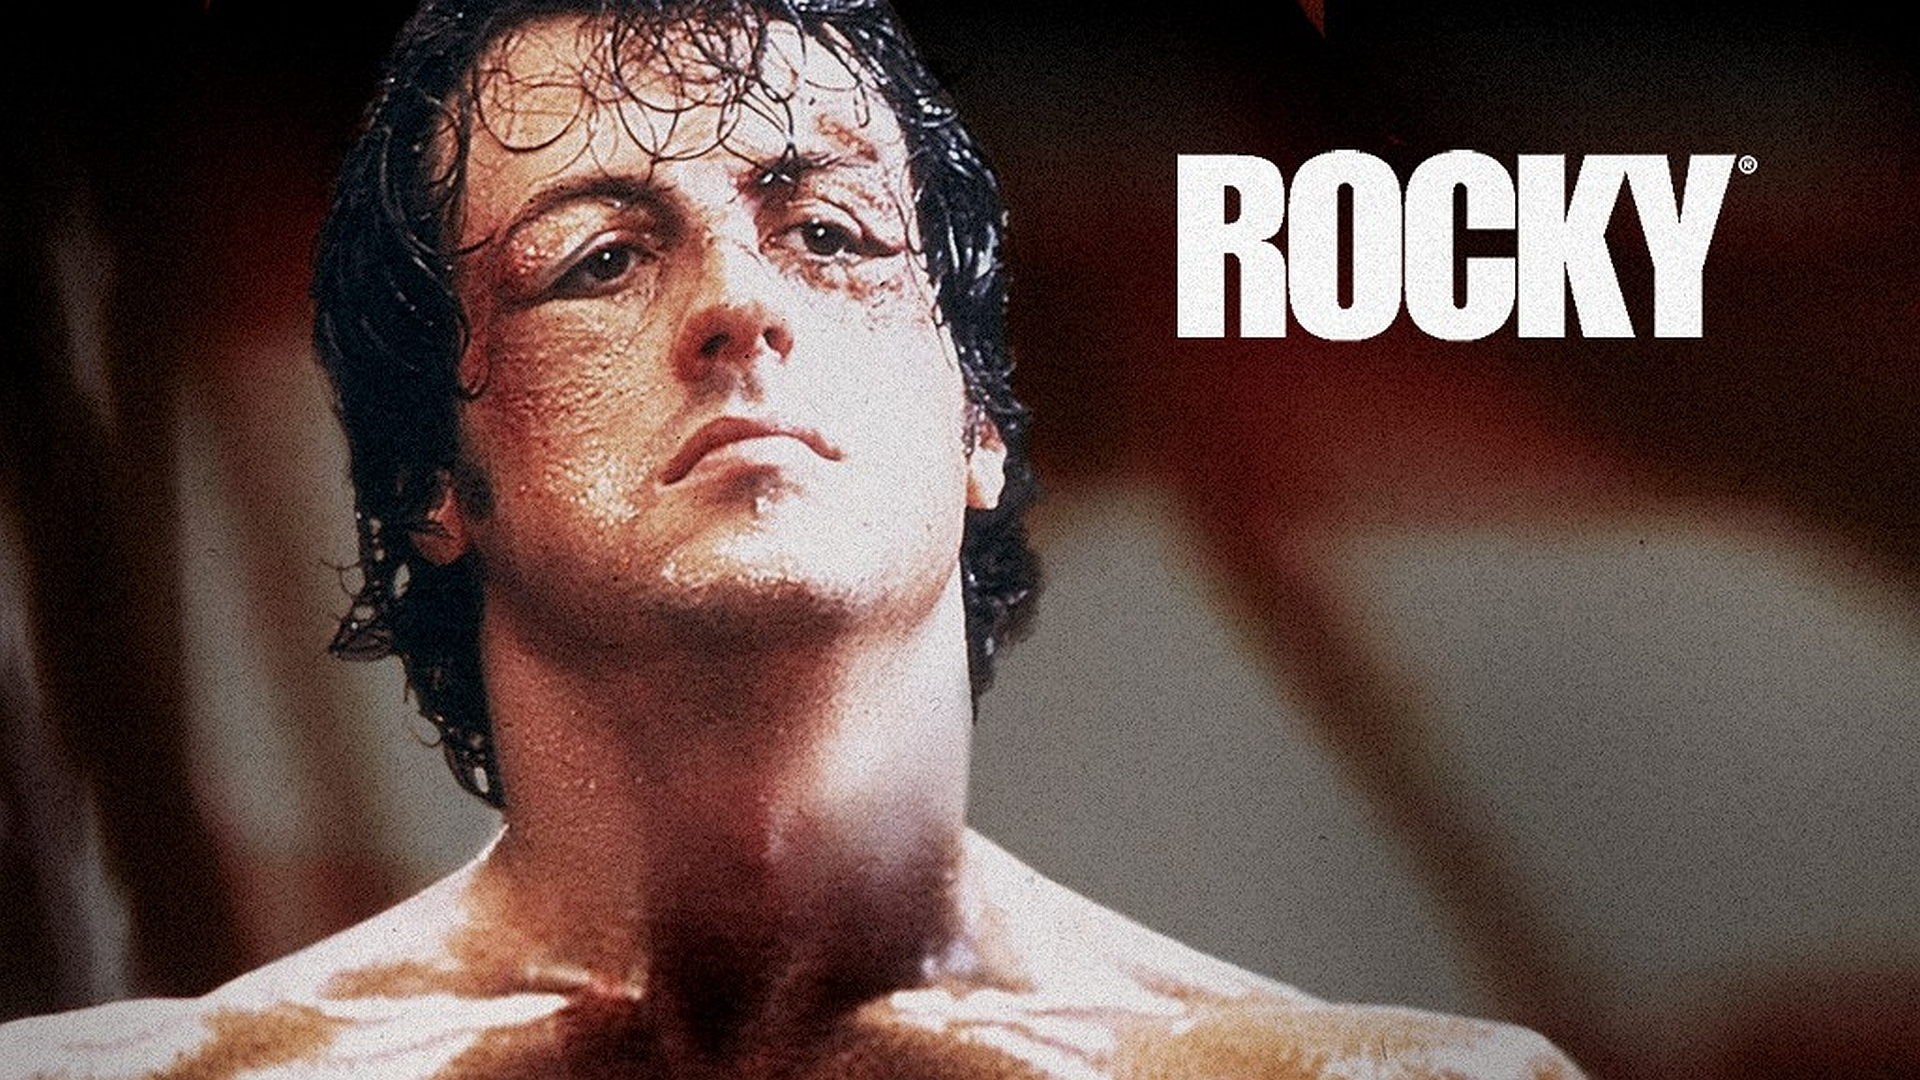 rocky theme song Stream rocky theme song by usn_audioproduction from desktop or your mobile device.